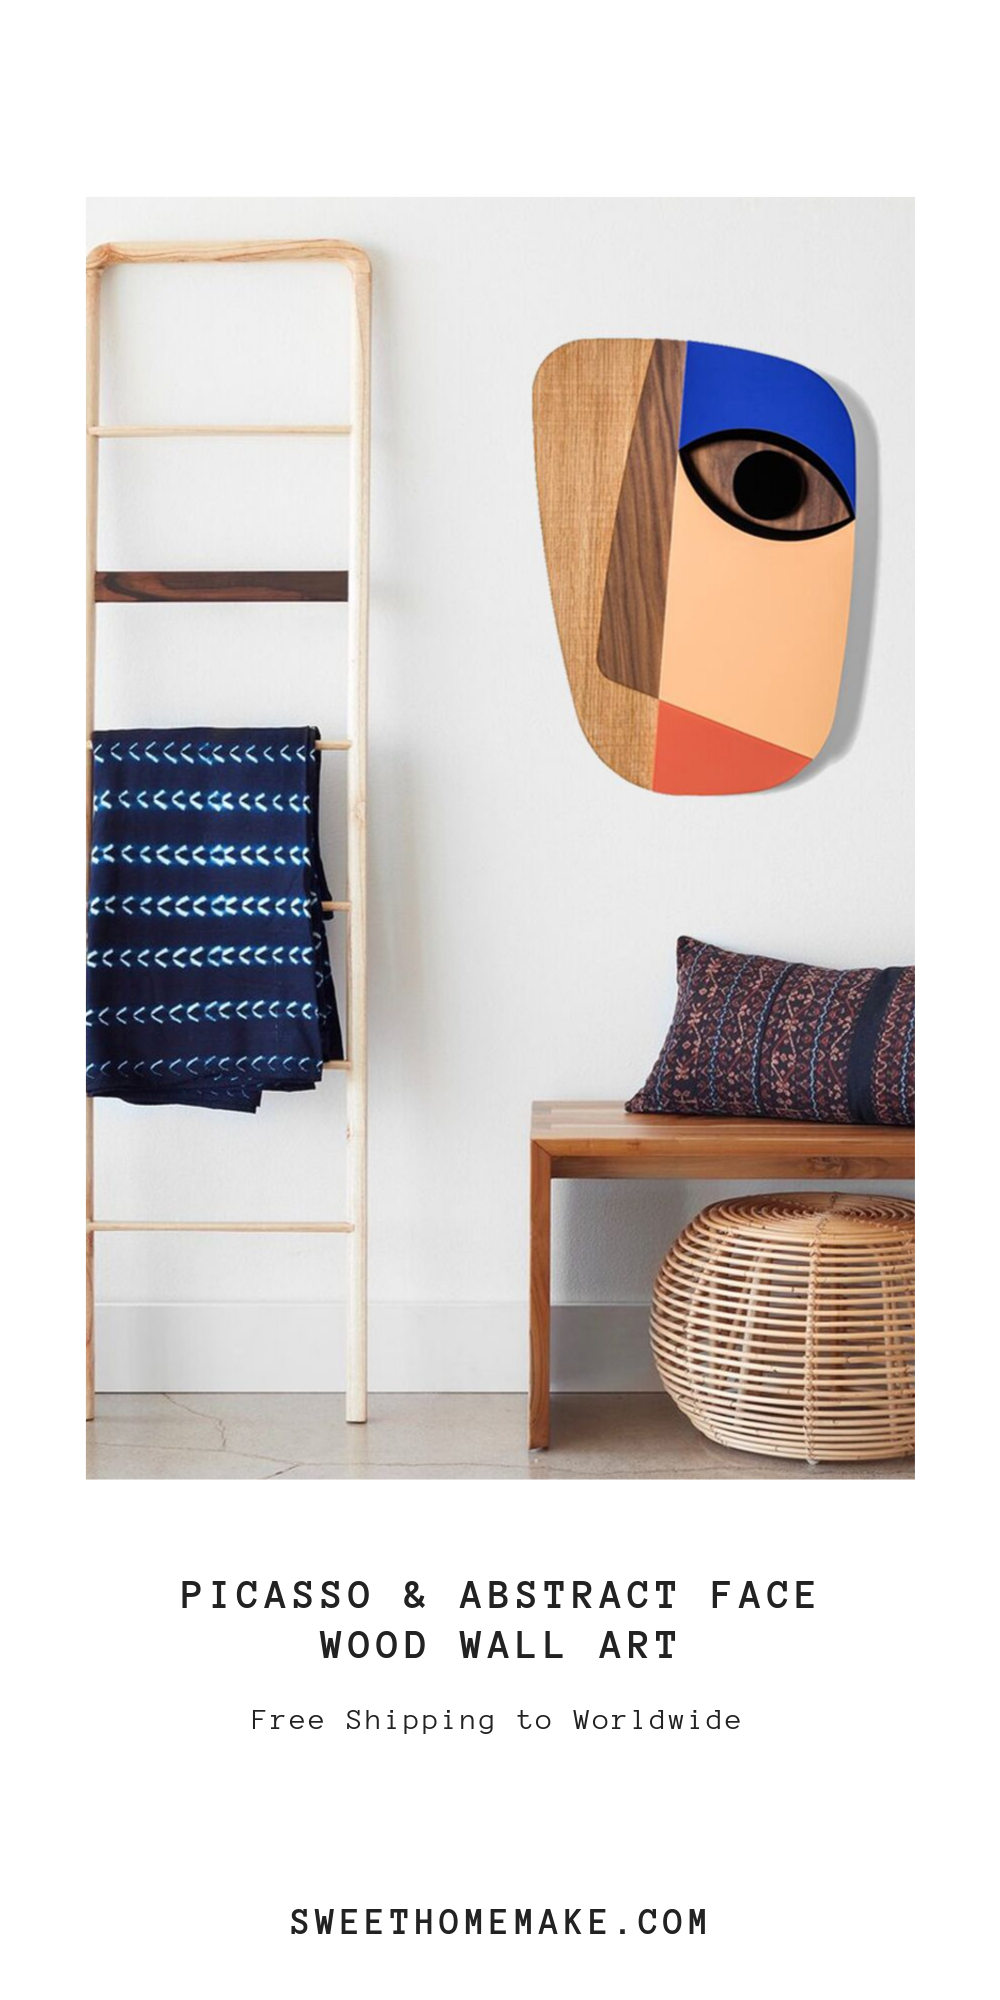 Picasso Face by Wood Wall Art